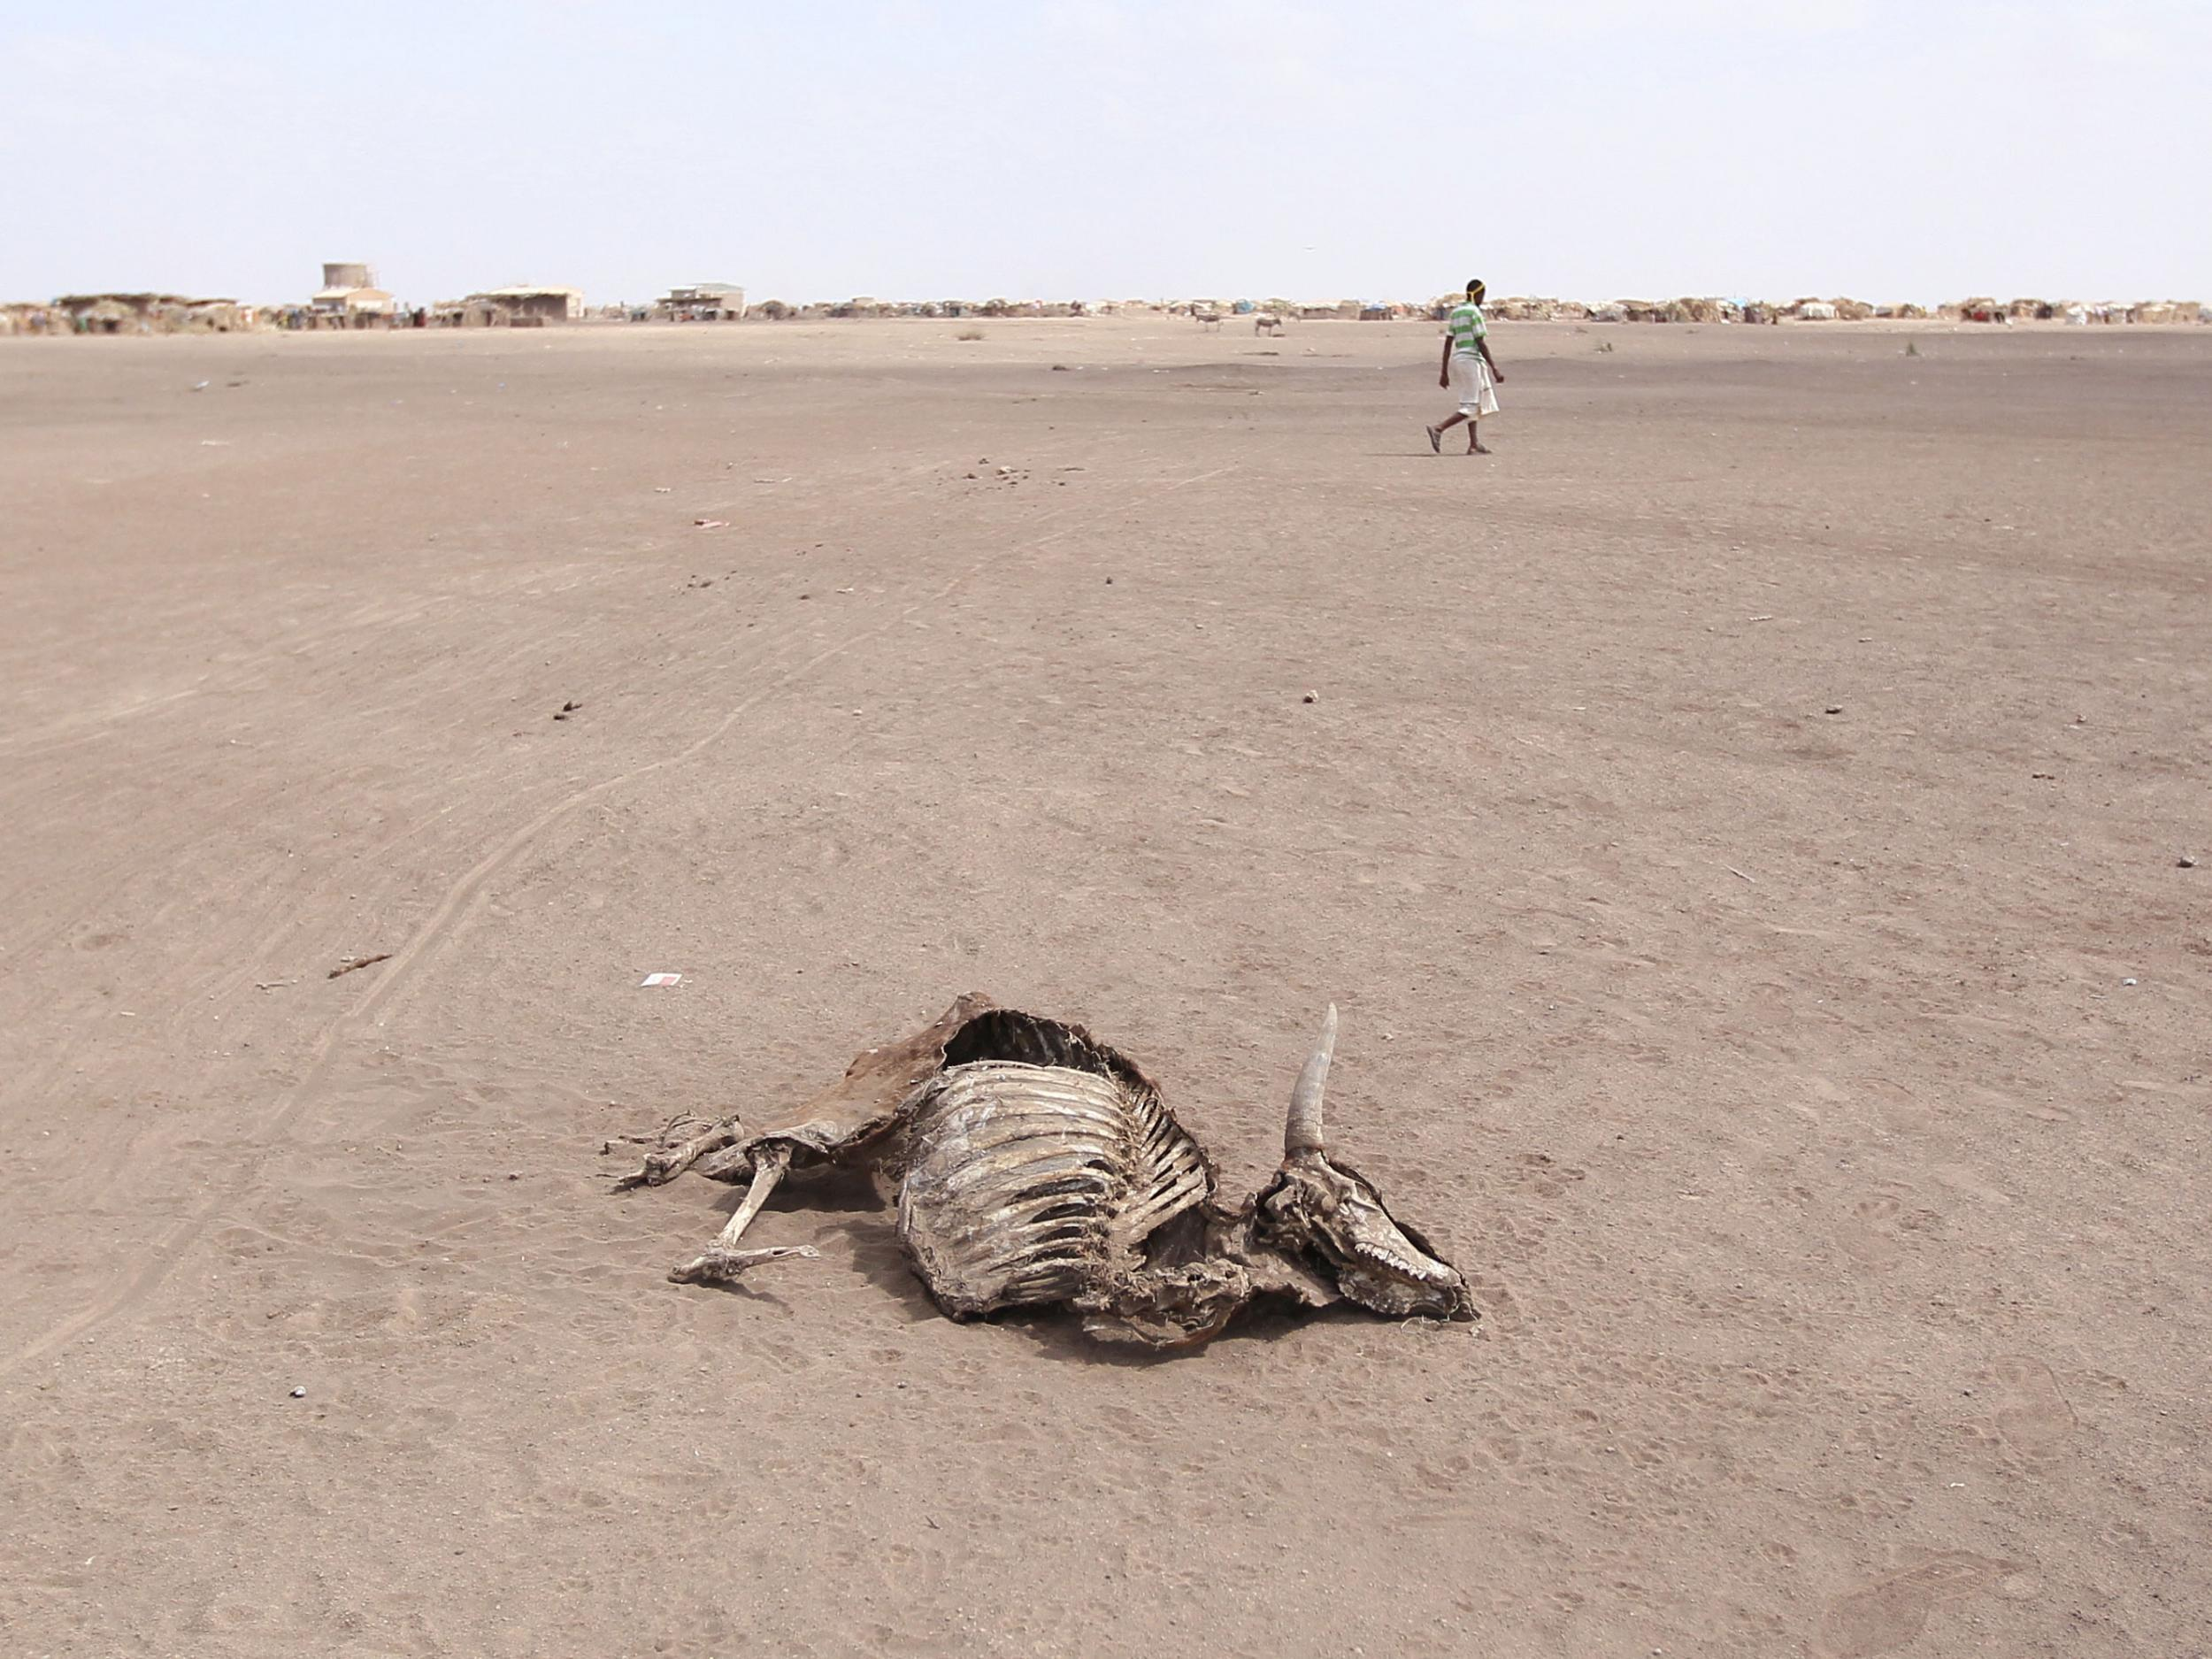 Ethiopia drought: Millions of people urgently in need of